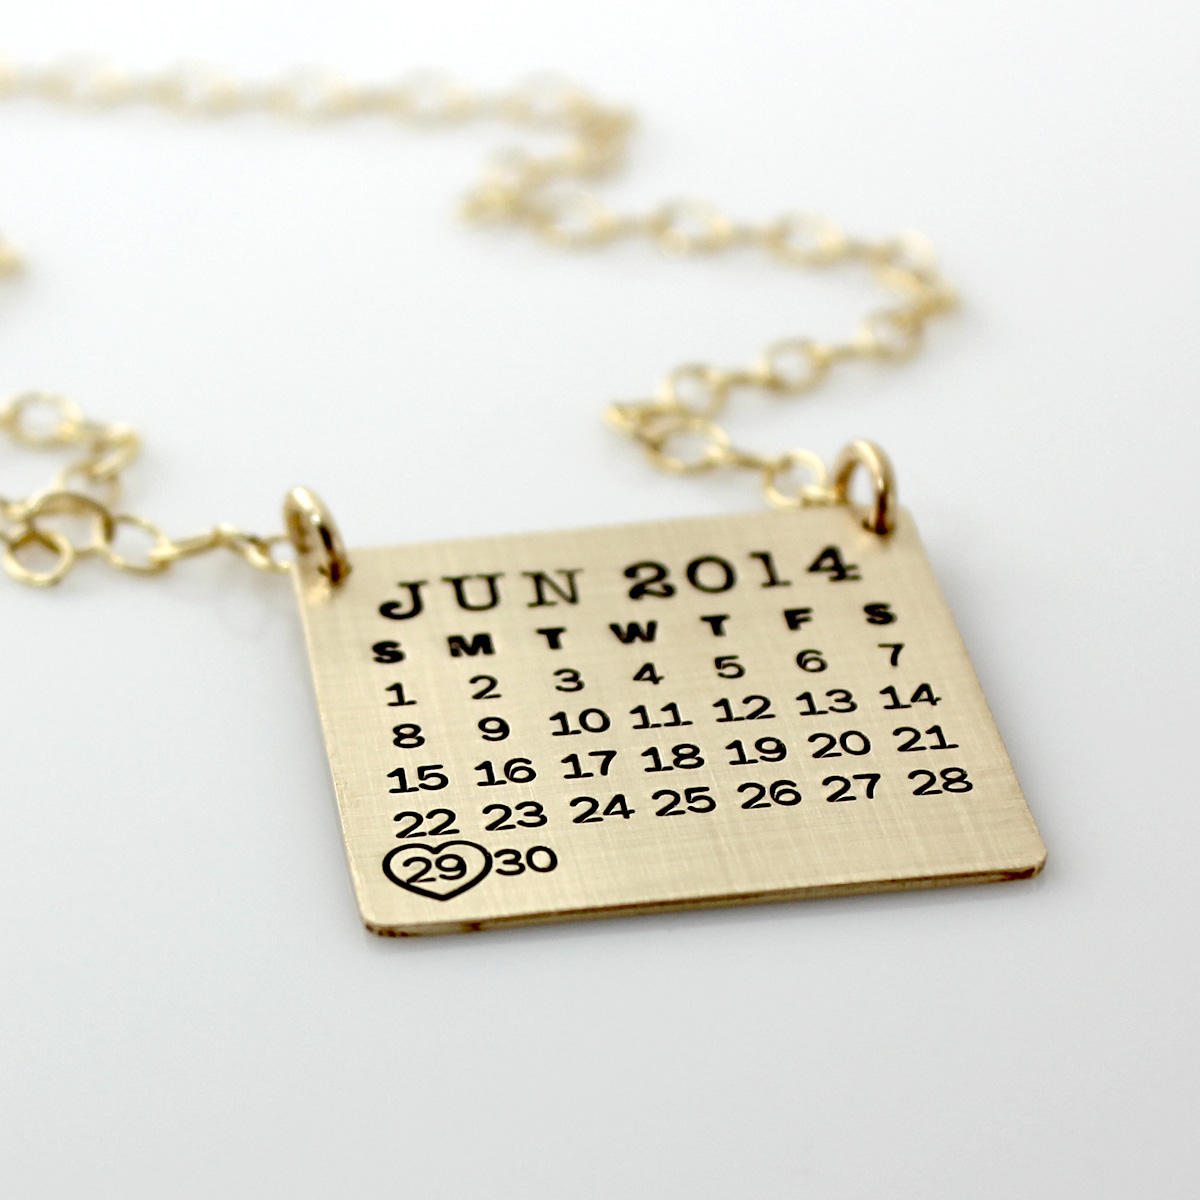 Mark Your Calendar Necklace Top Hang - Gold Filled, Brushed Finish